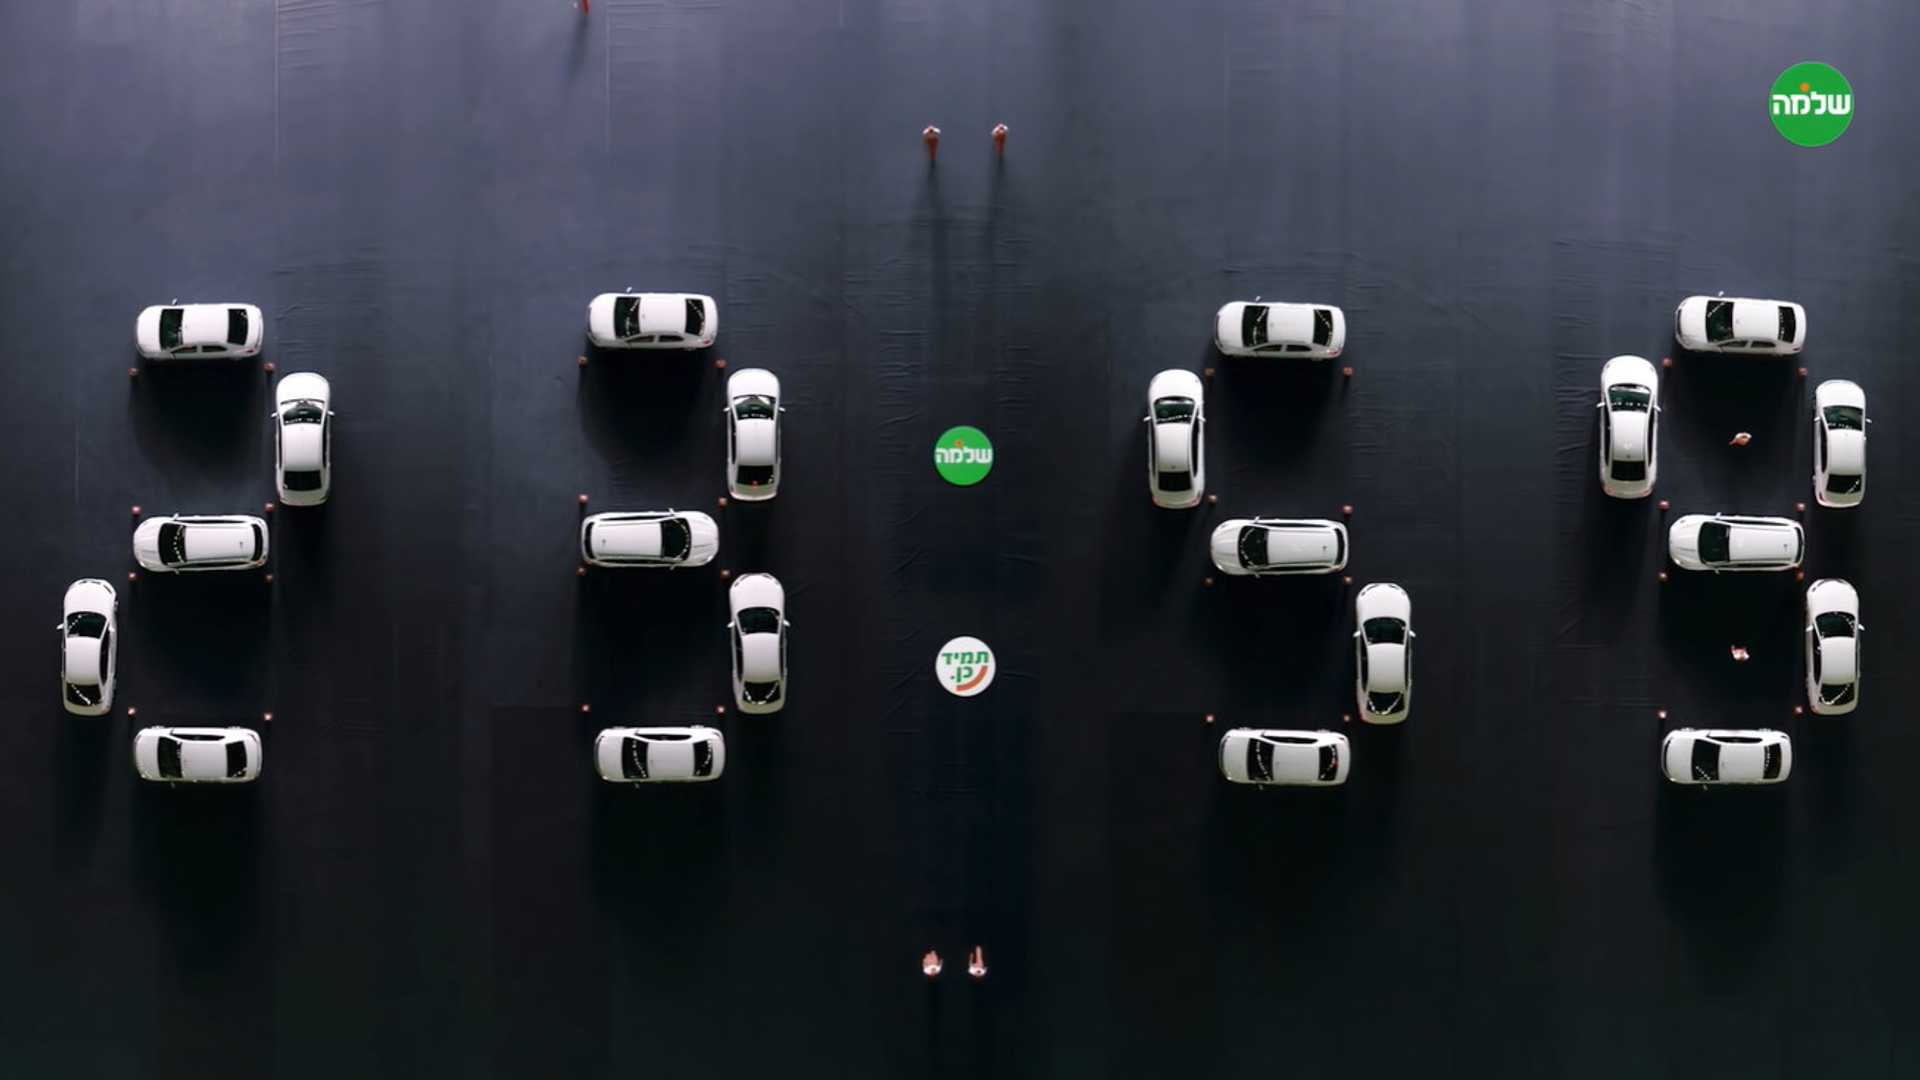 Check out this clock made entirely of cars being parked